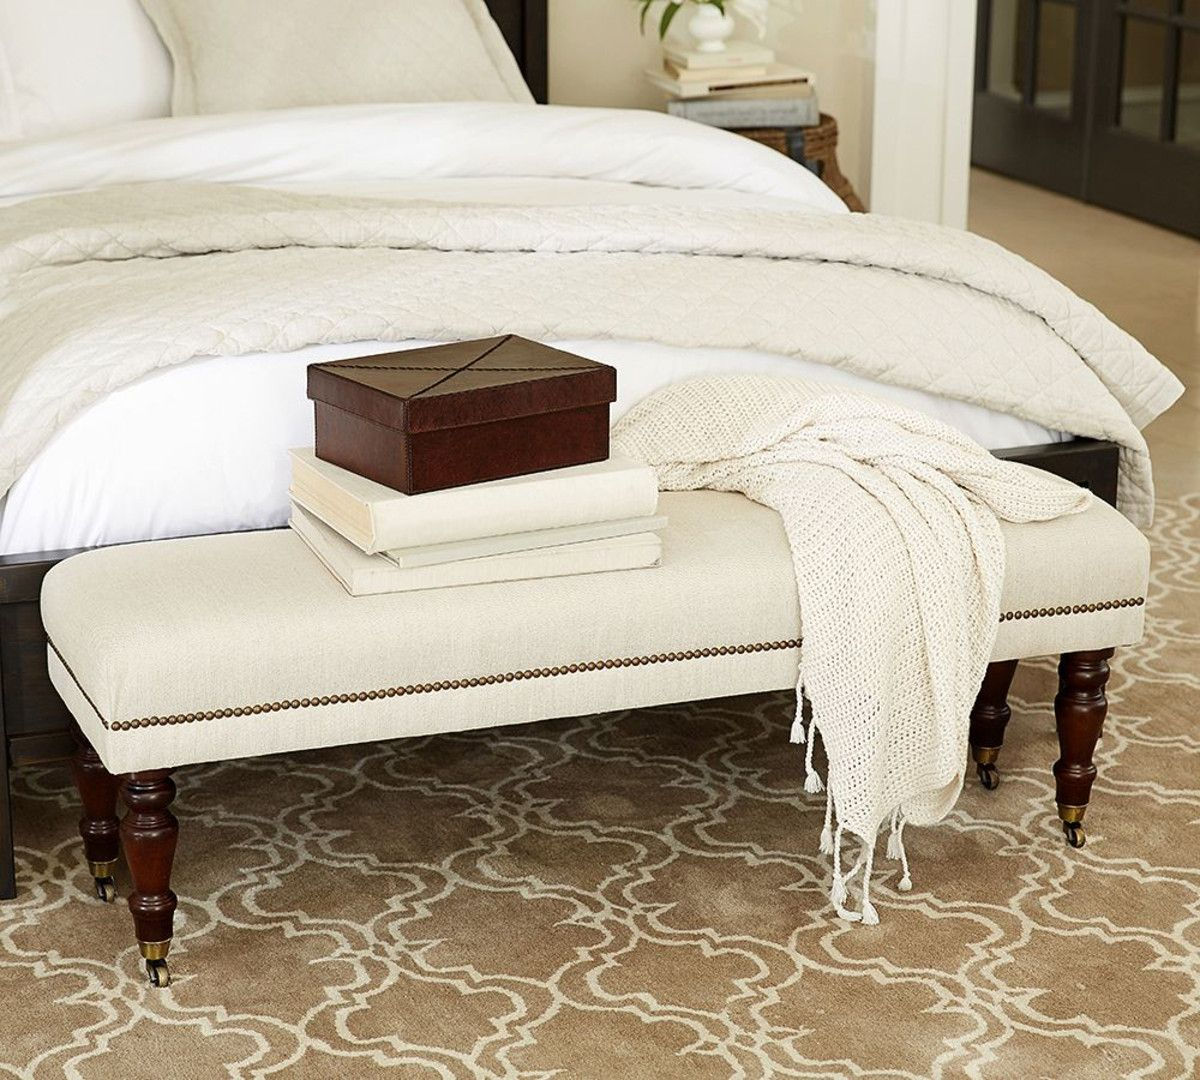 Pottery Barn Raleigh Upholstered Bench with Nailhead trim